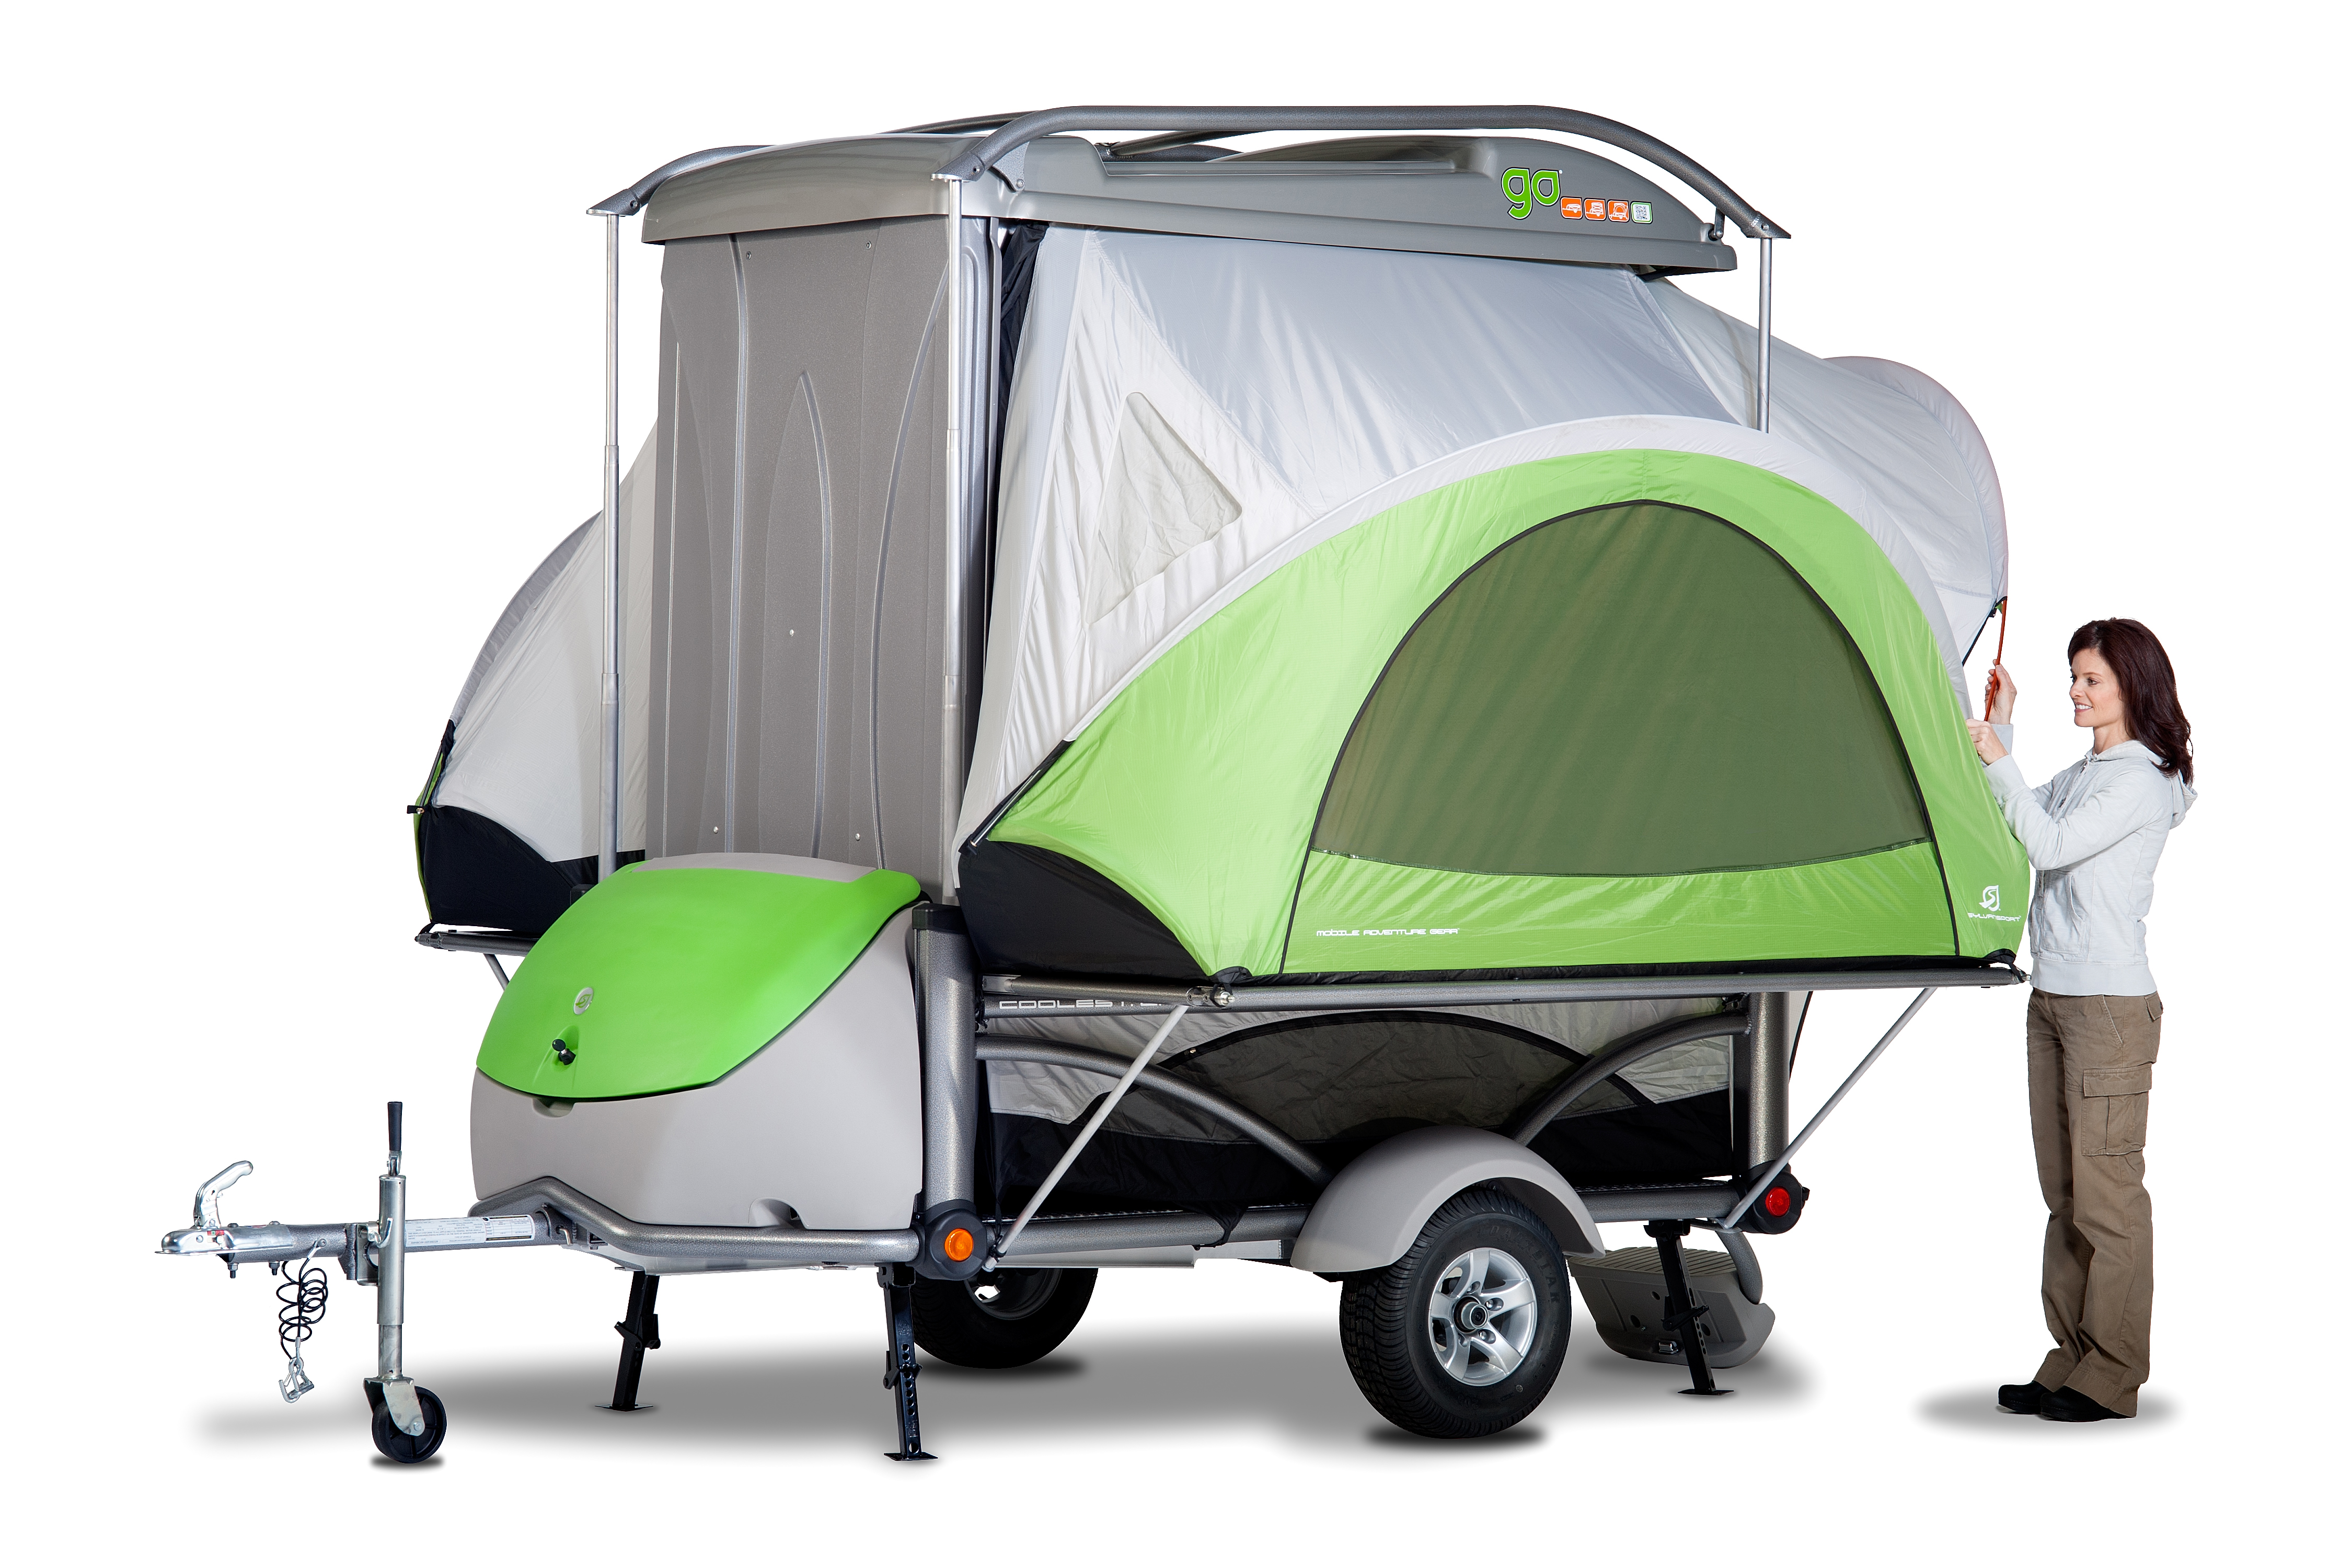 Sylvansport Go Camper Hauls Gear And Easily Sleeps Four